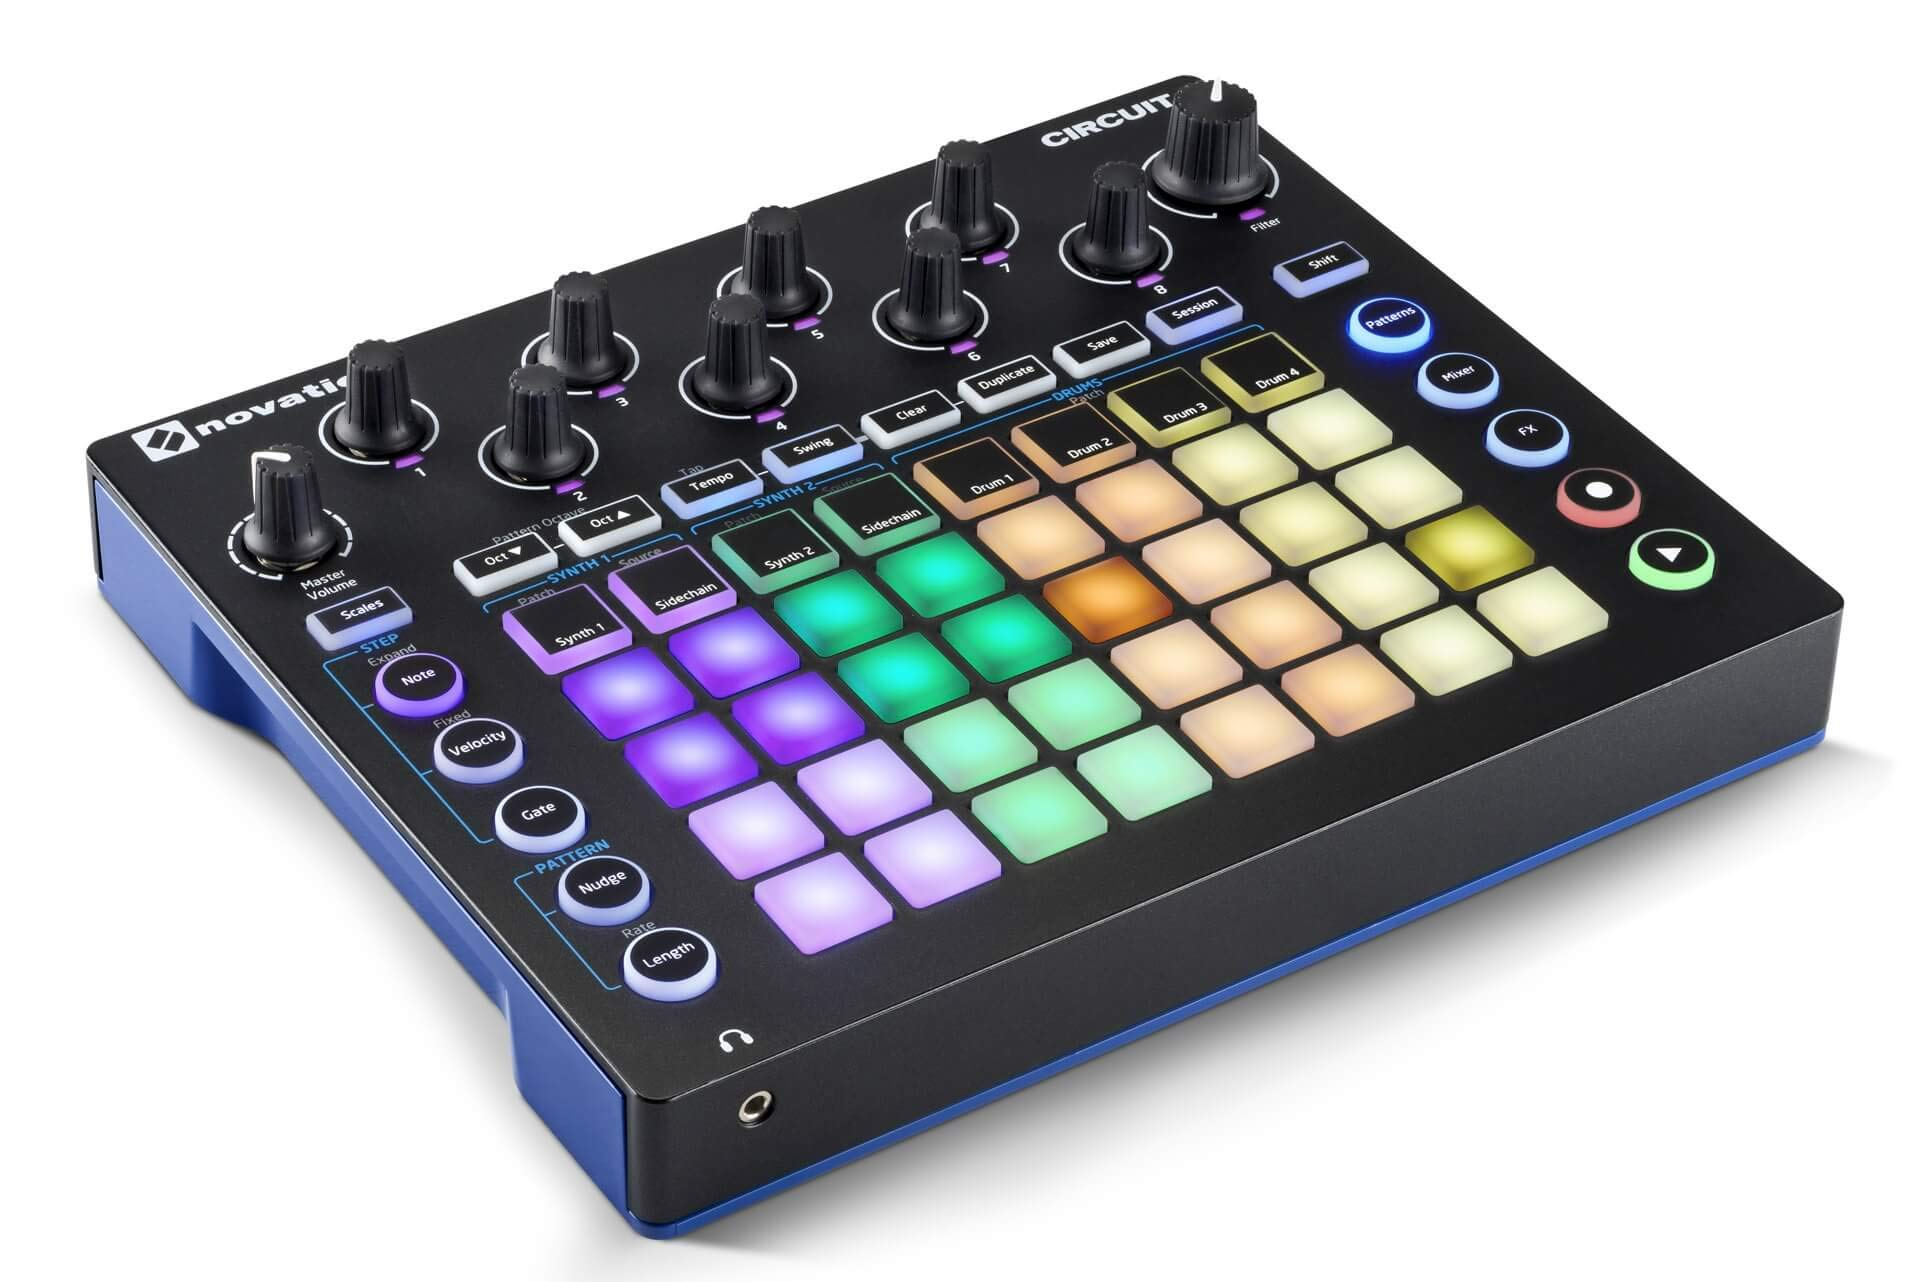 Novation Circuit Drum Machine, Pad Controller Grid-Based Groove Box with 1 Year Free Extended Warranty by Novation